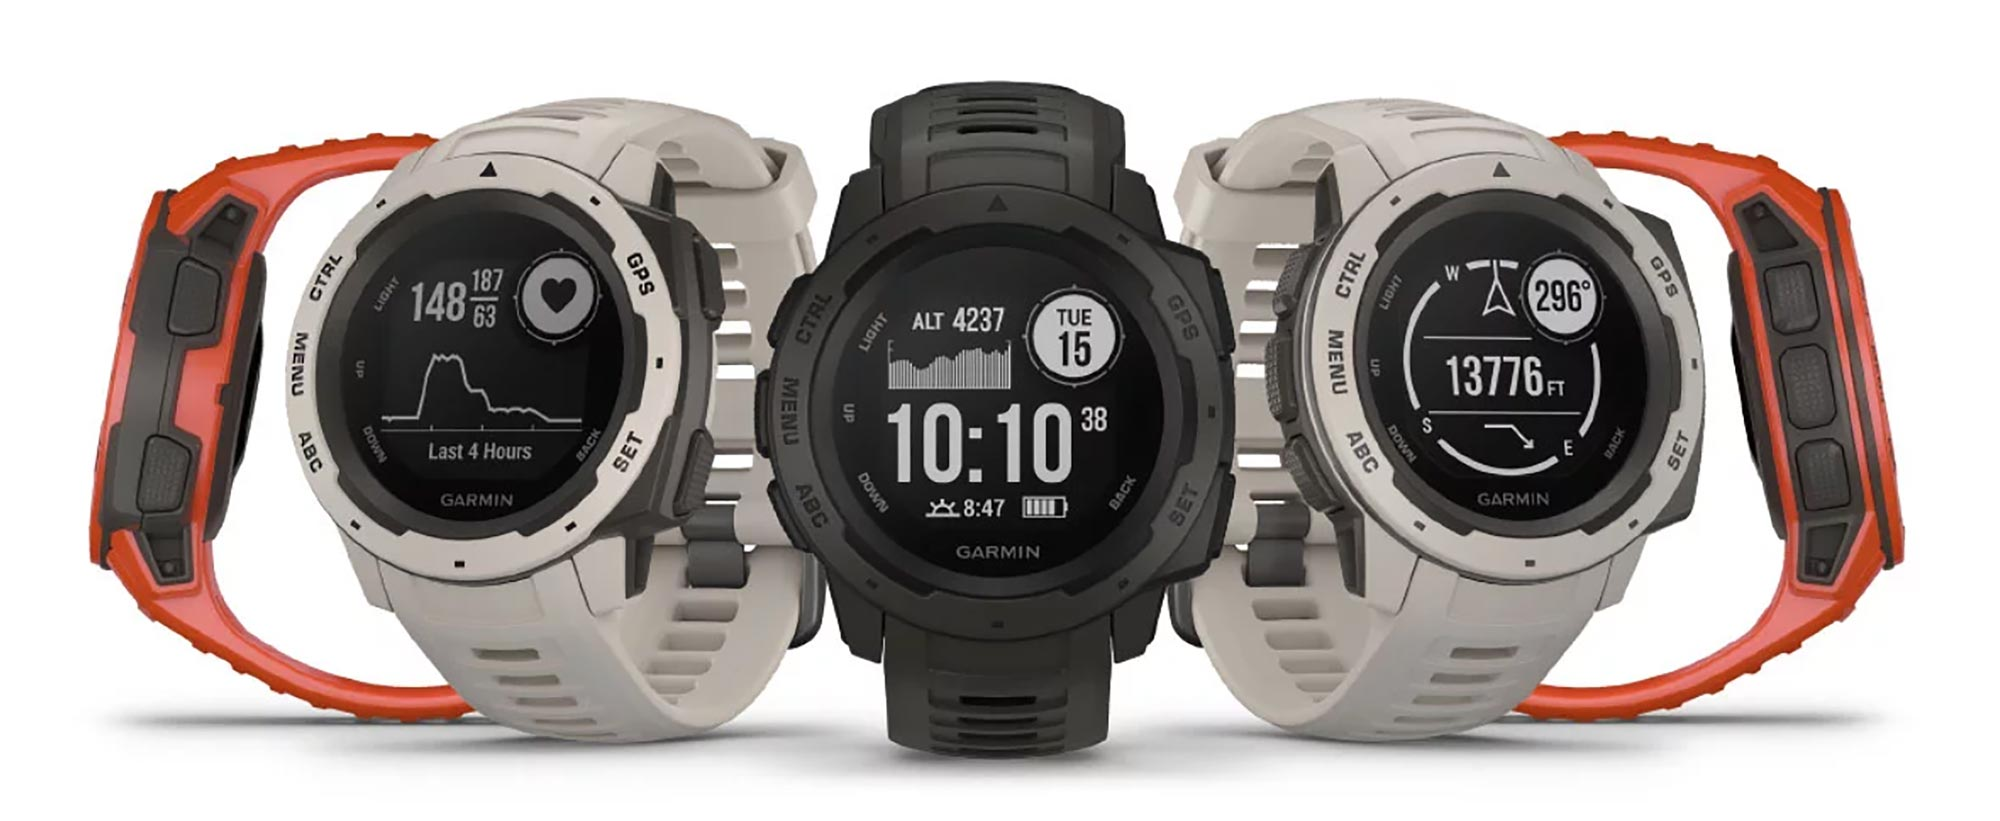 #1 Outdoor GPS Watch – Garmin Instinct | $100 OFF!!!